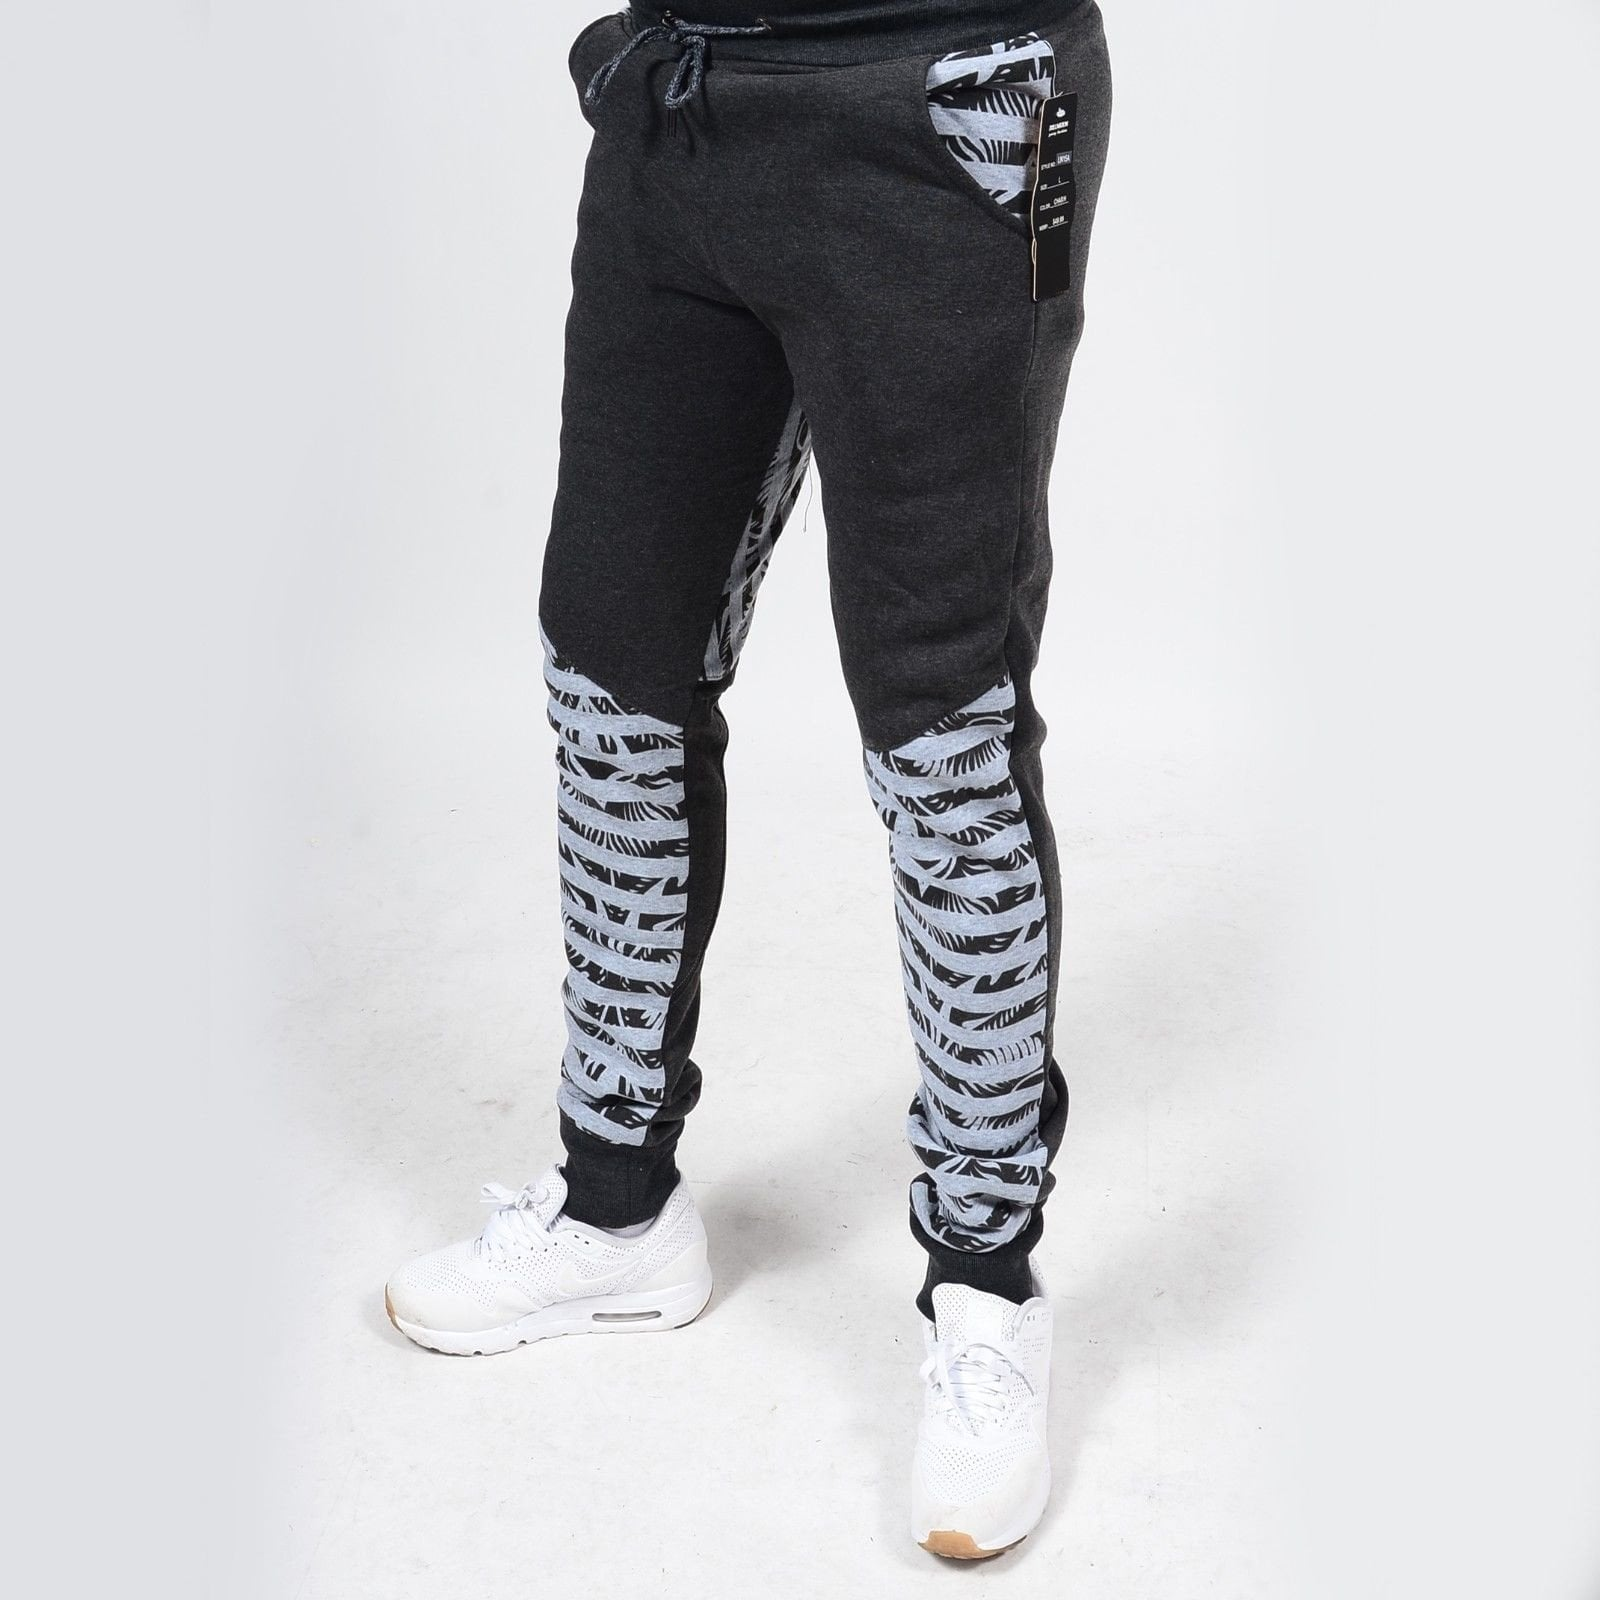 Rs7 #15 Zebra Print Fleece Jogger